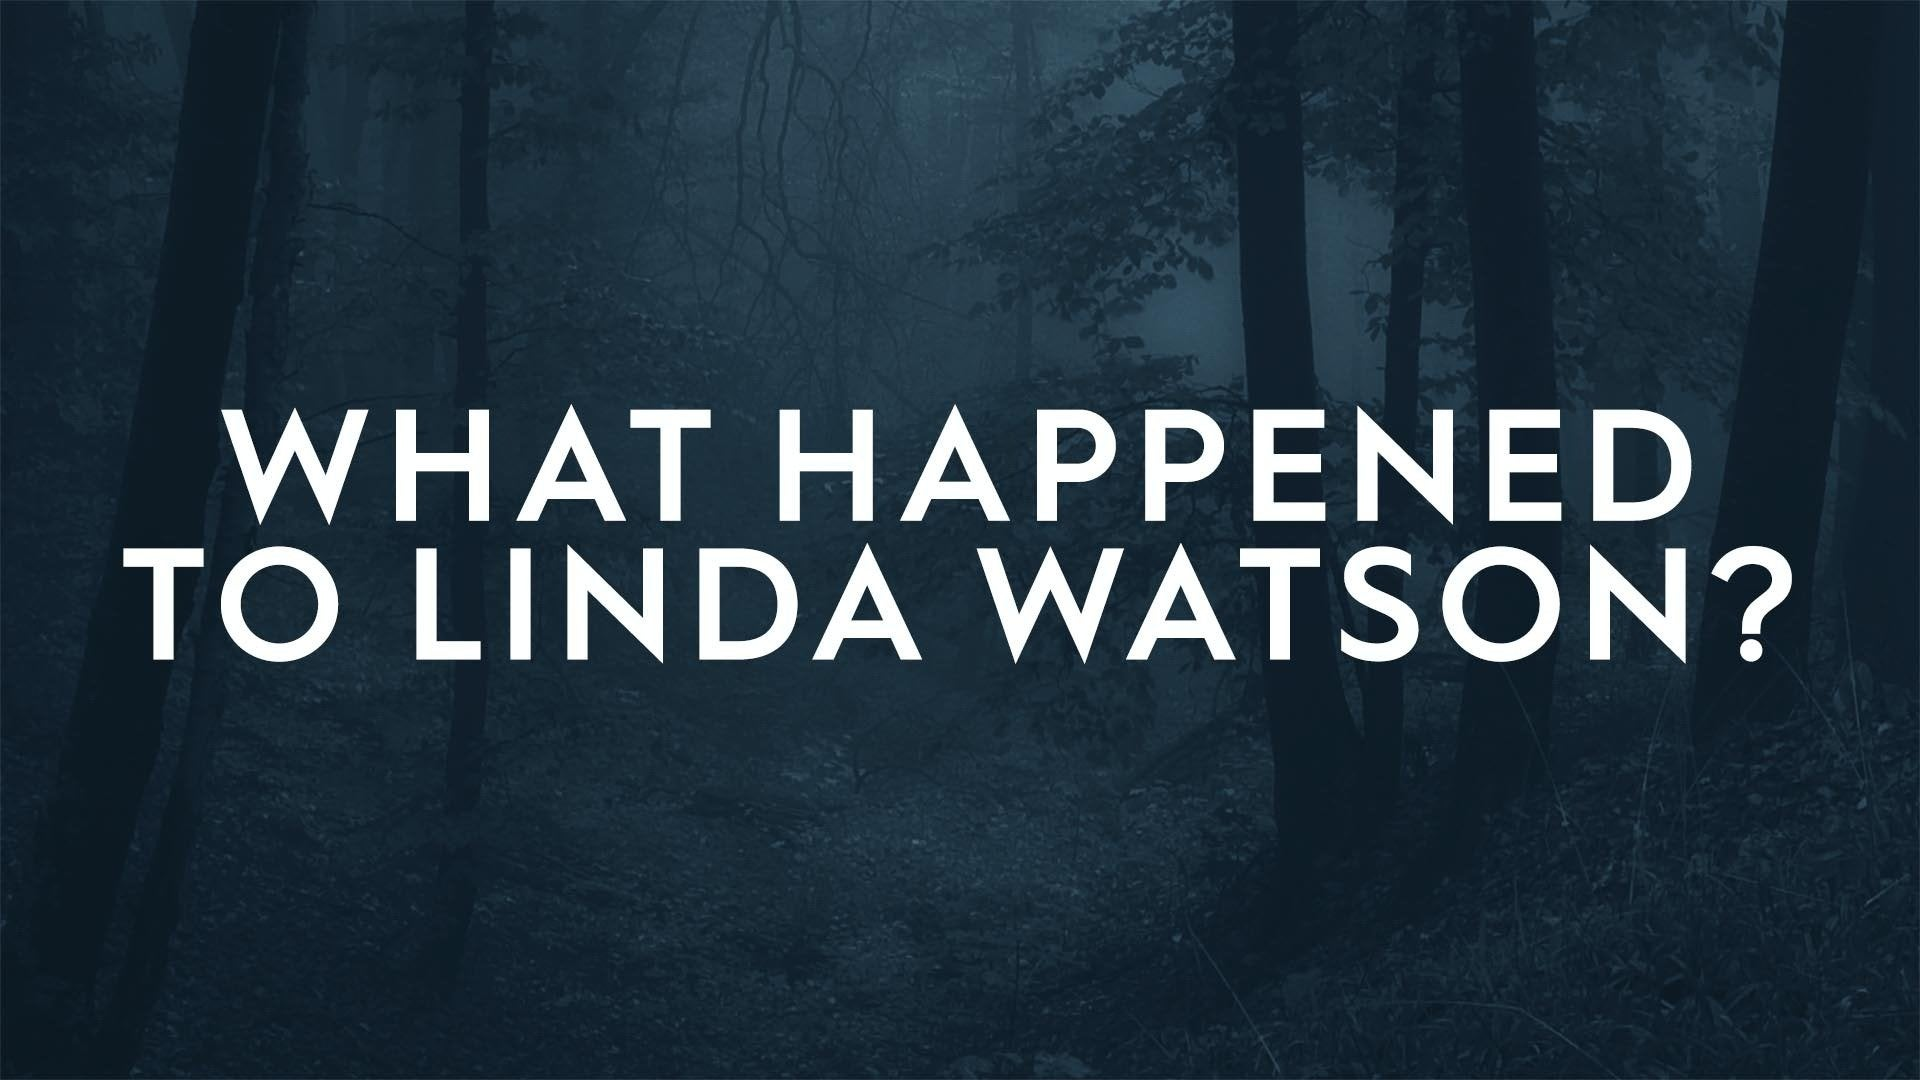 What Happened to Linda Watson?